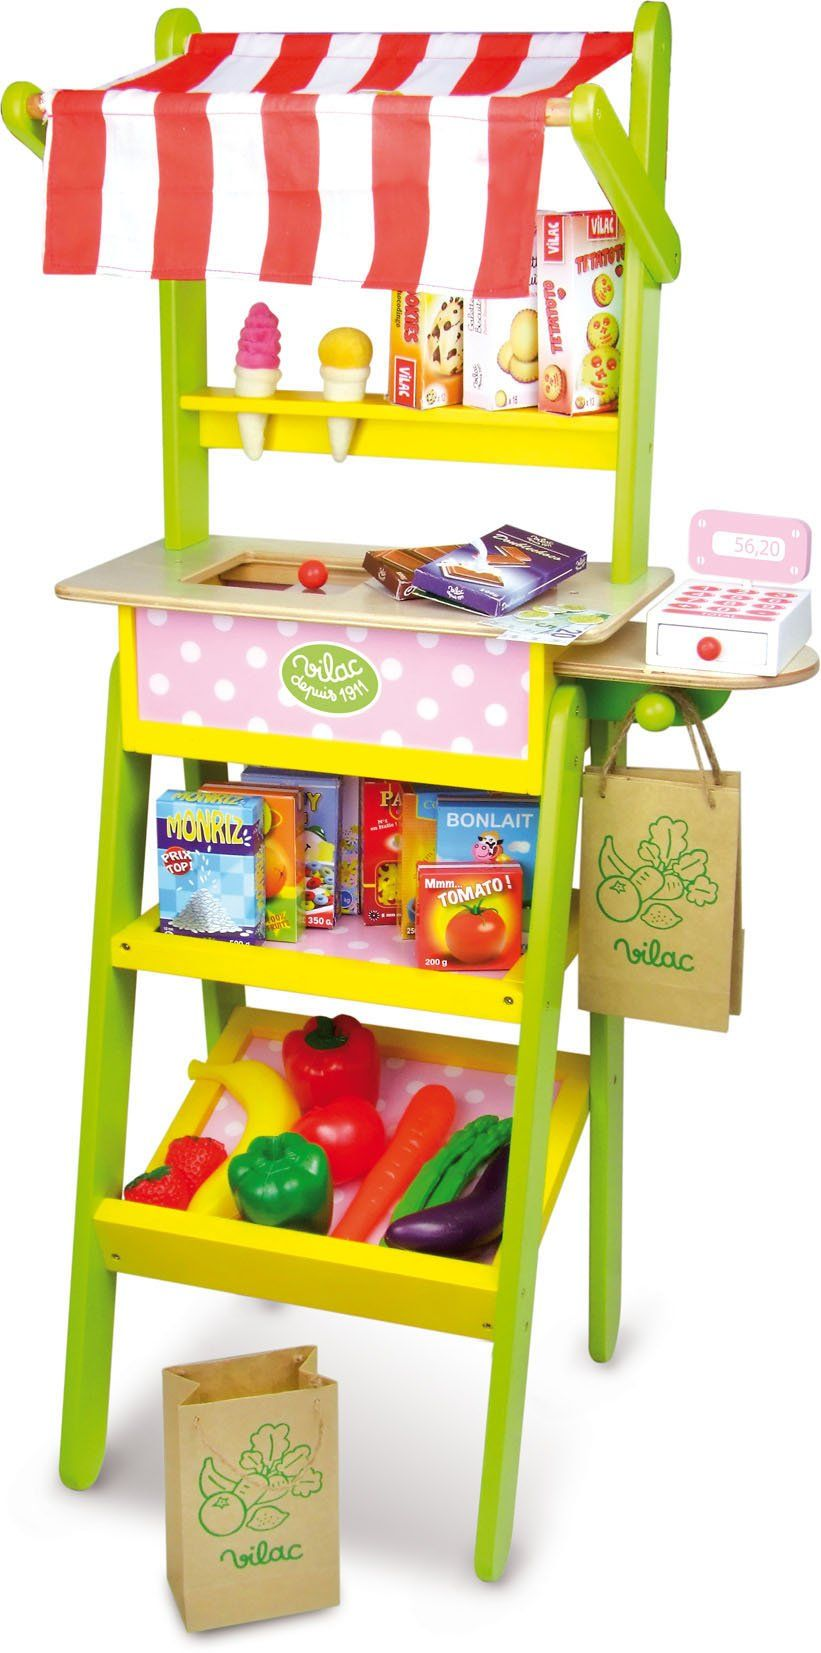 Vilac Grocery Store Development Toy, Large